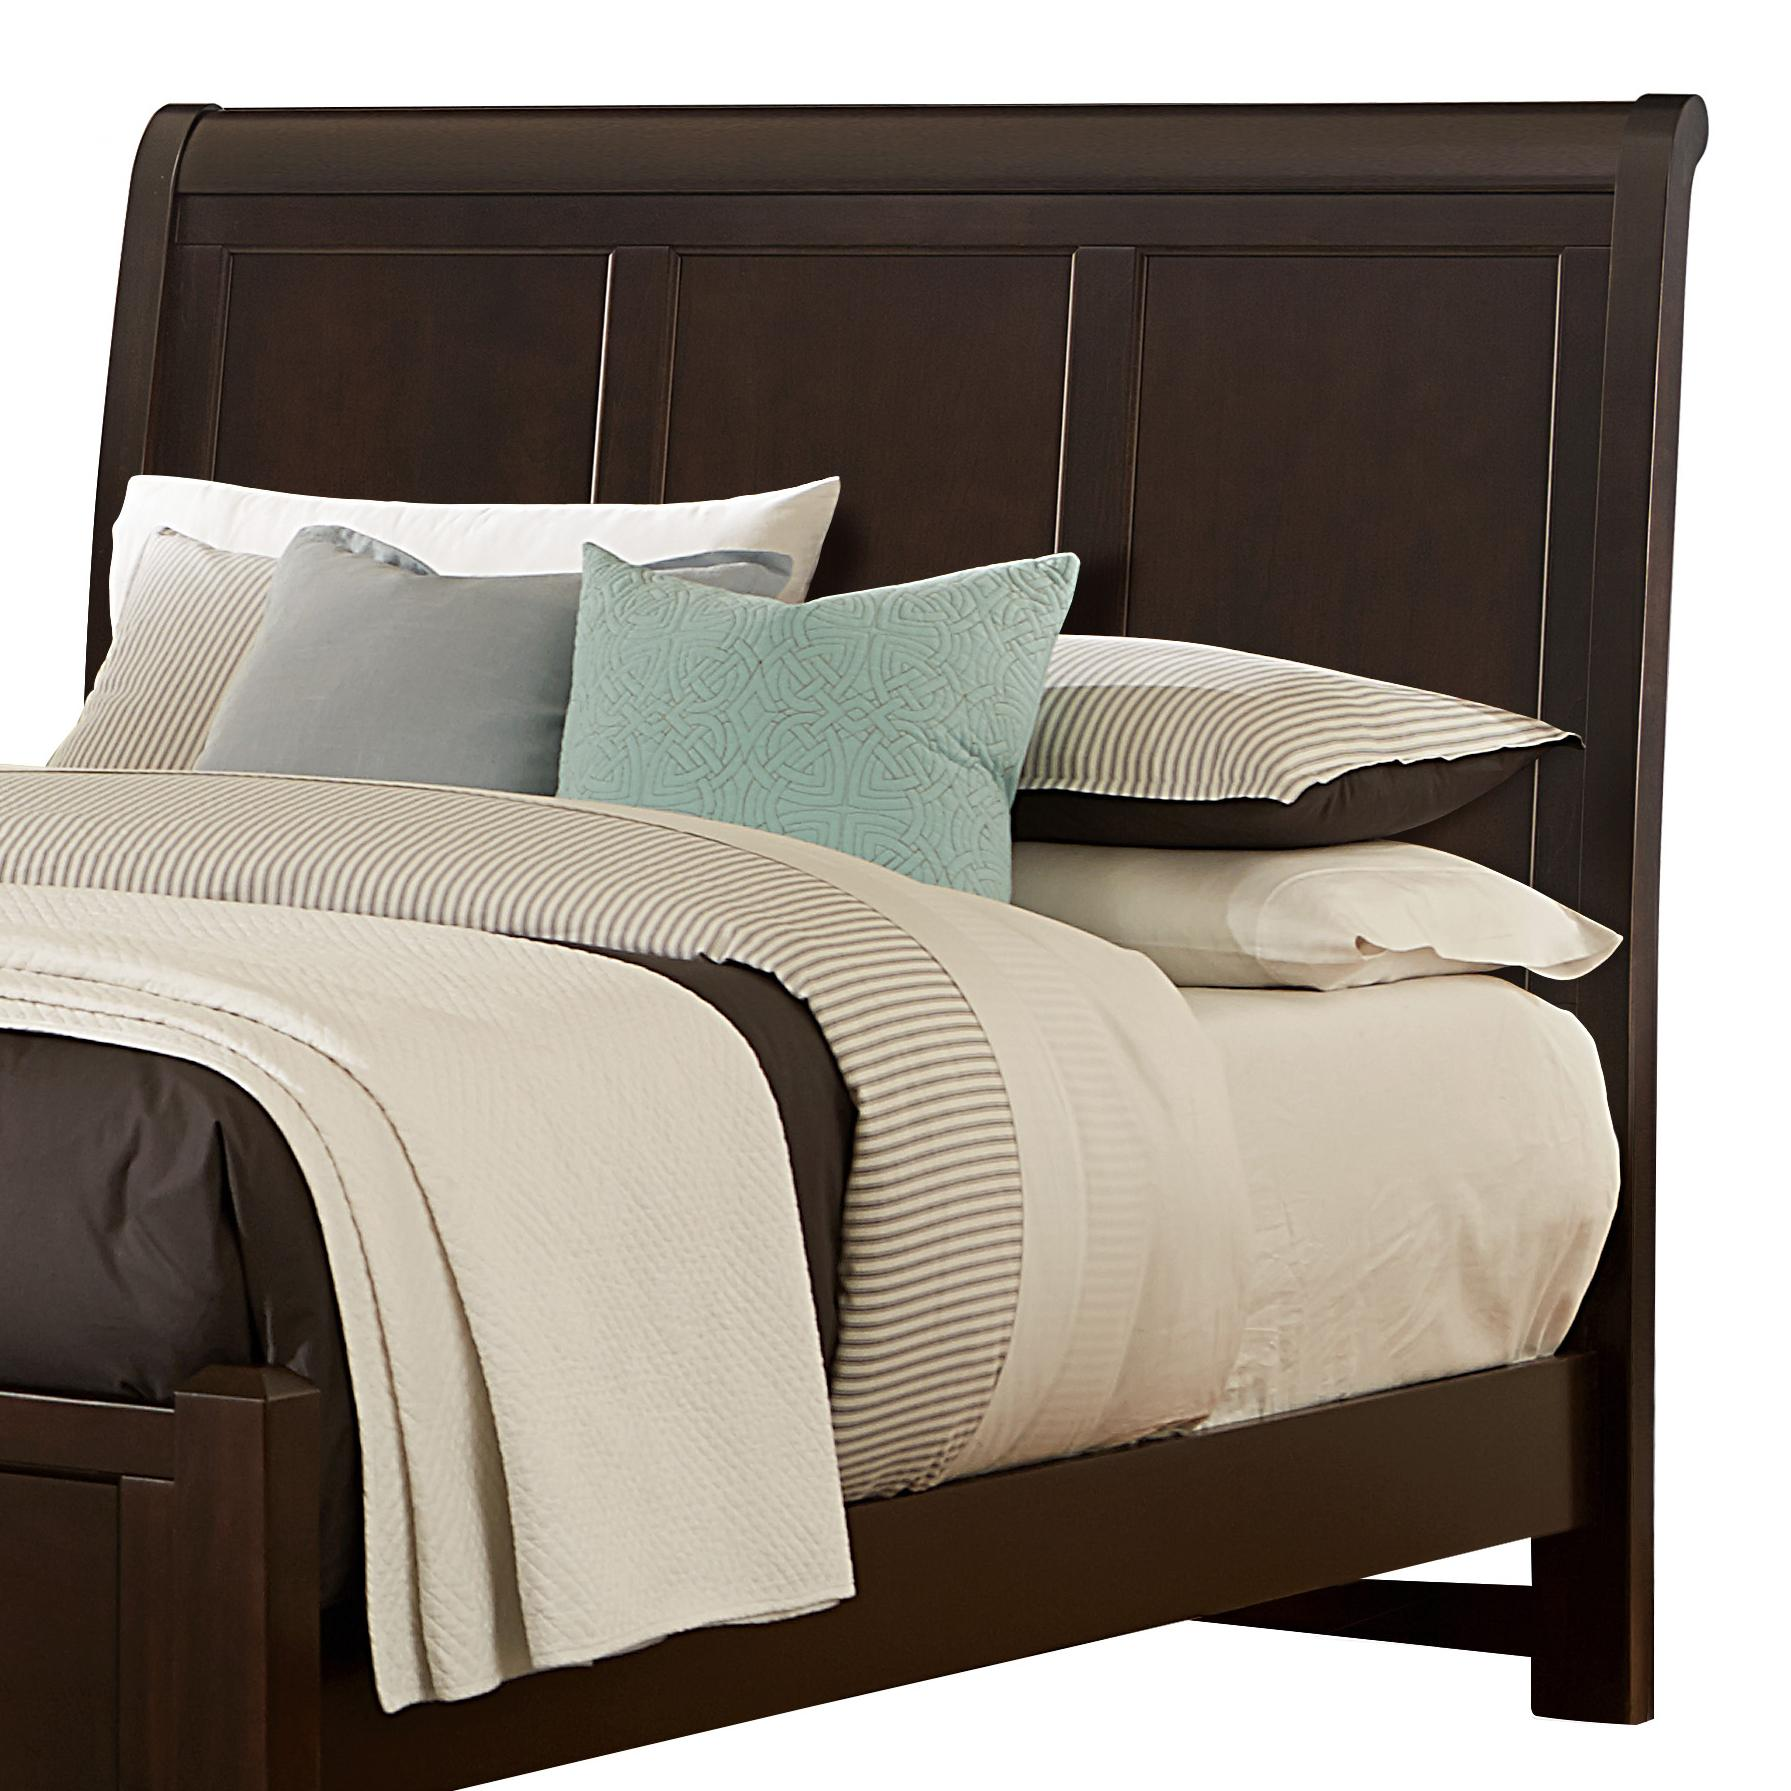 Vaughan Bassett Bonanza King Sleigh Headboard - Item Number: BB27-663